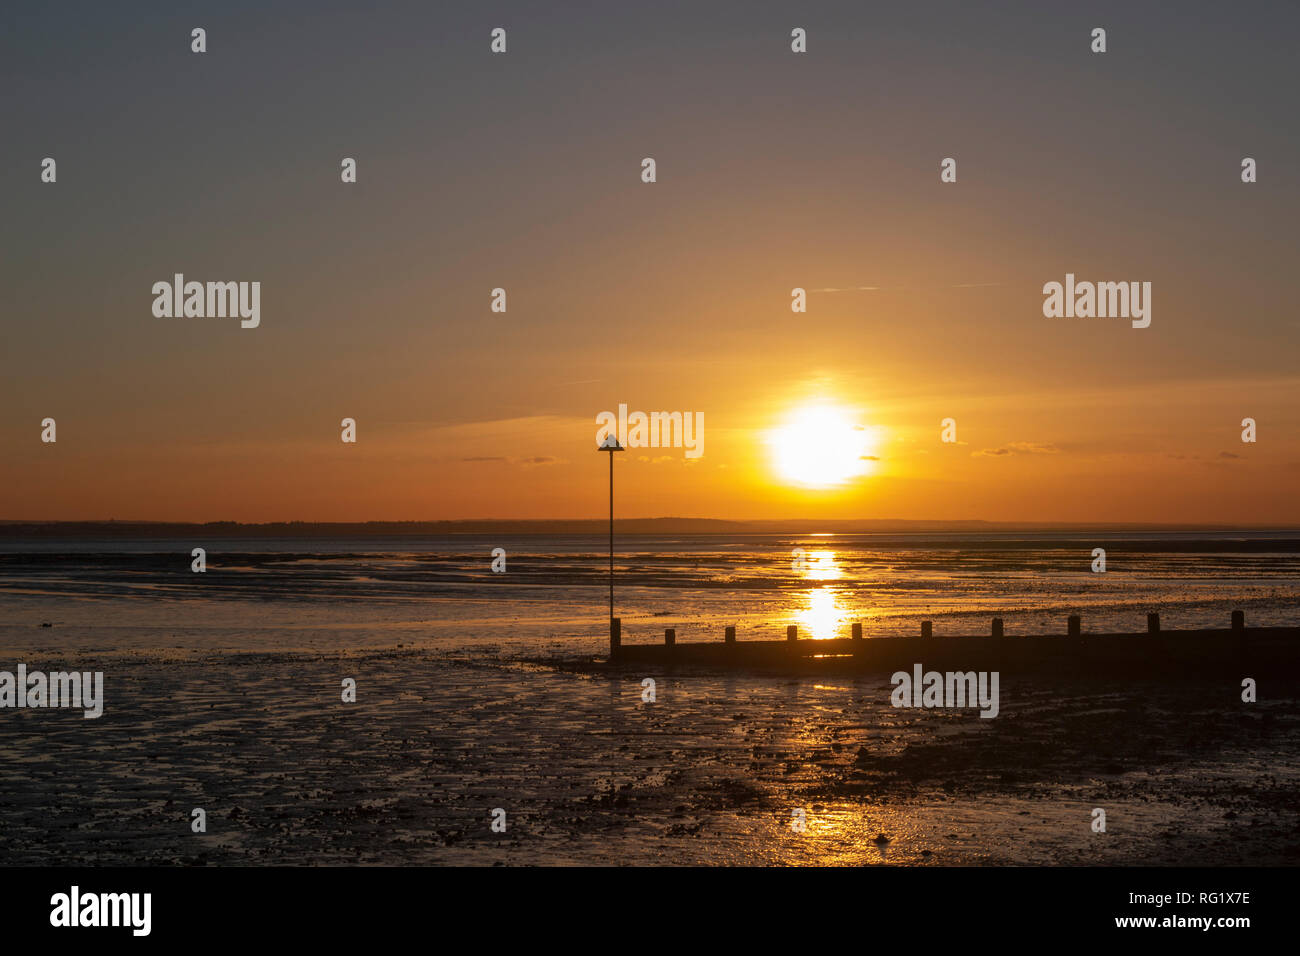 Sunset at  Southend-on-Sea, Essex, England - Stock Image